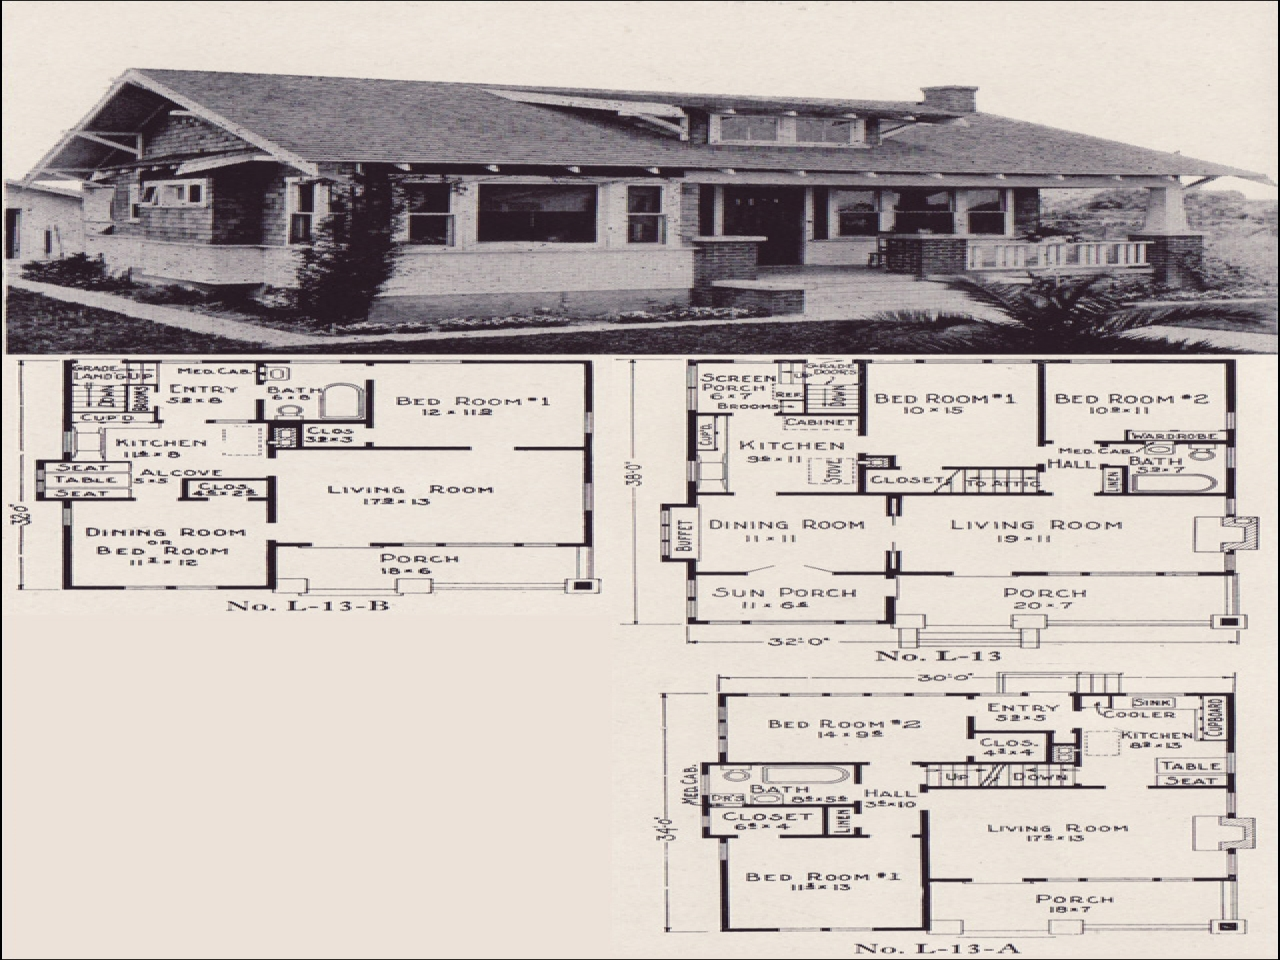 Bungalow house plans california bungalow house floor plans Ranch bungalow floor plans